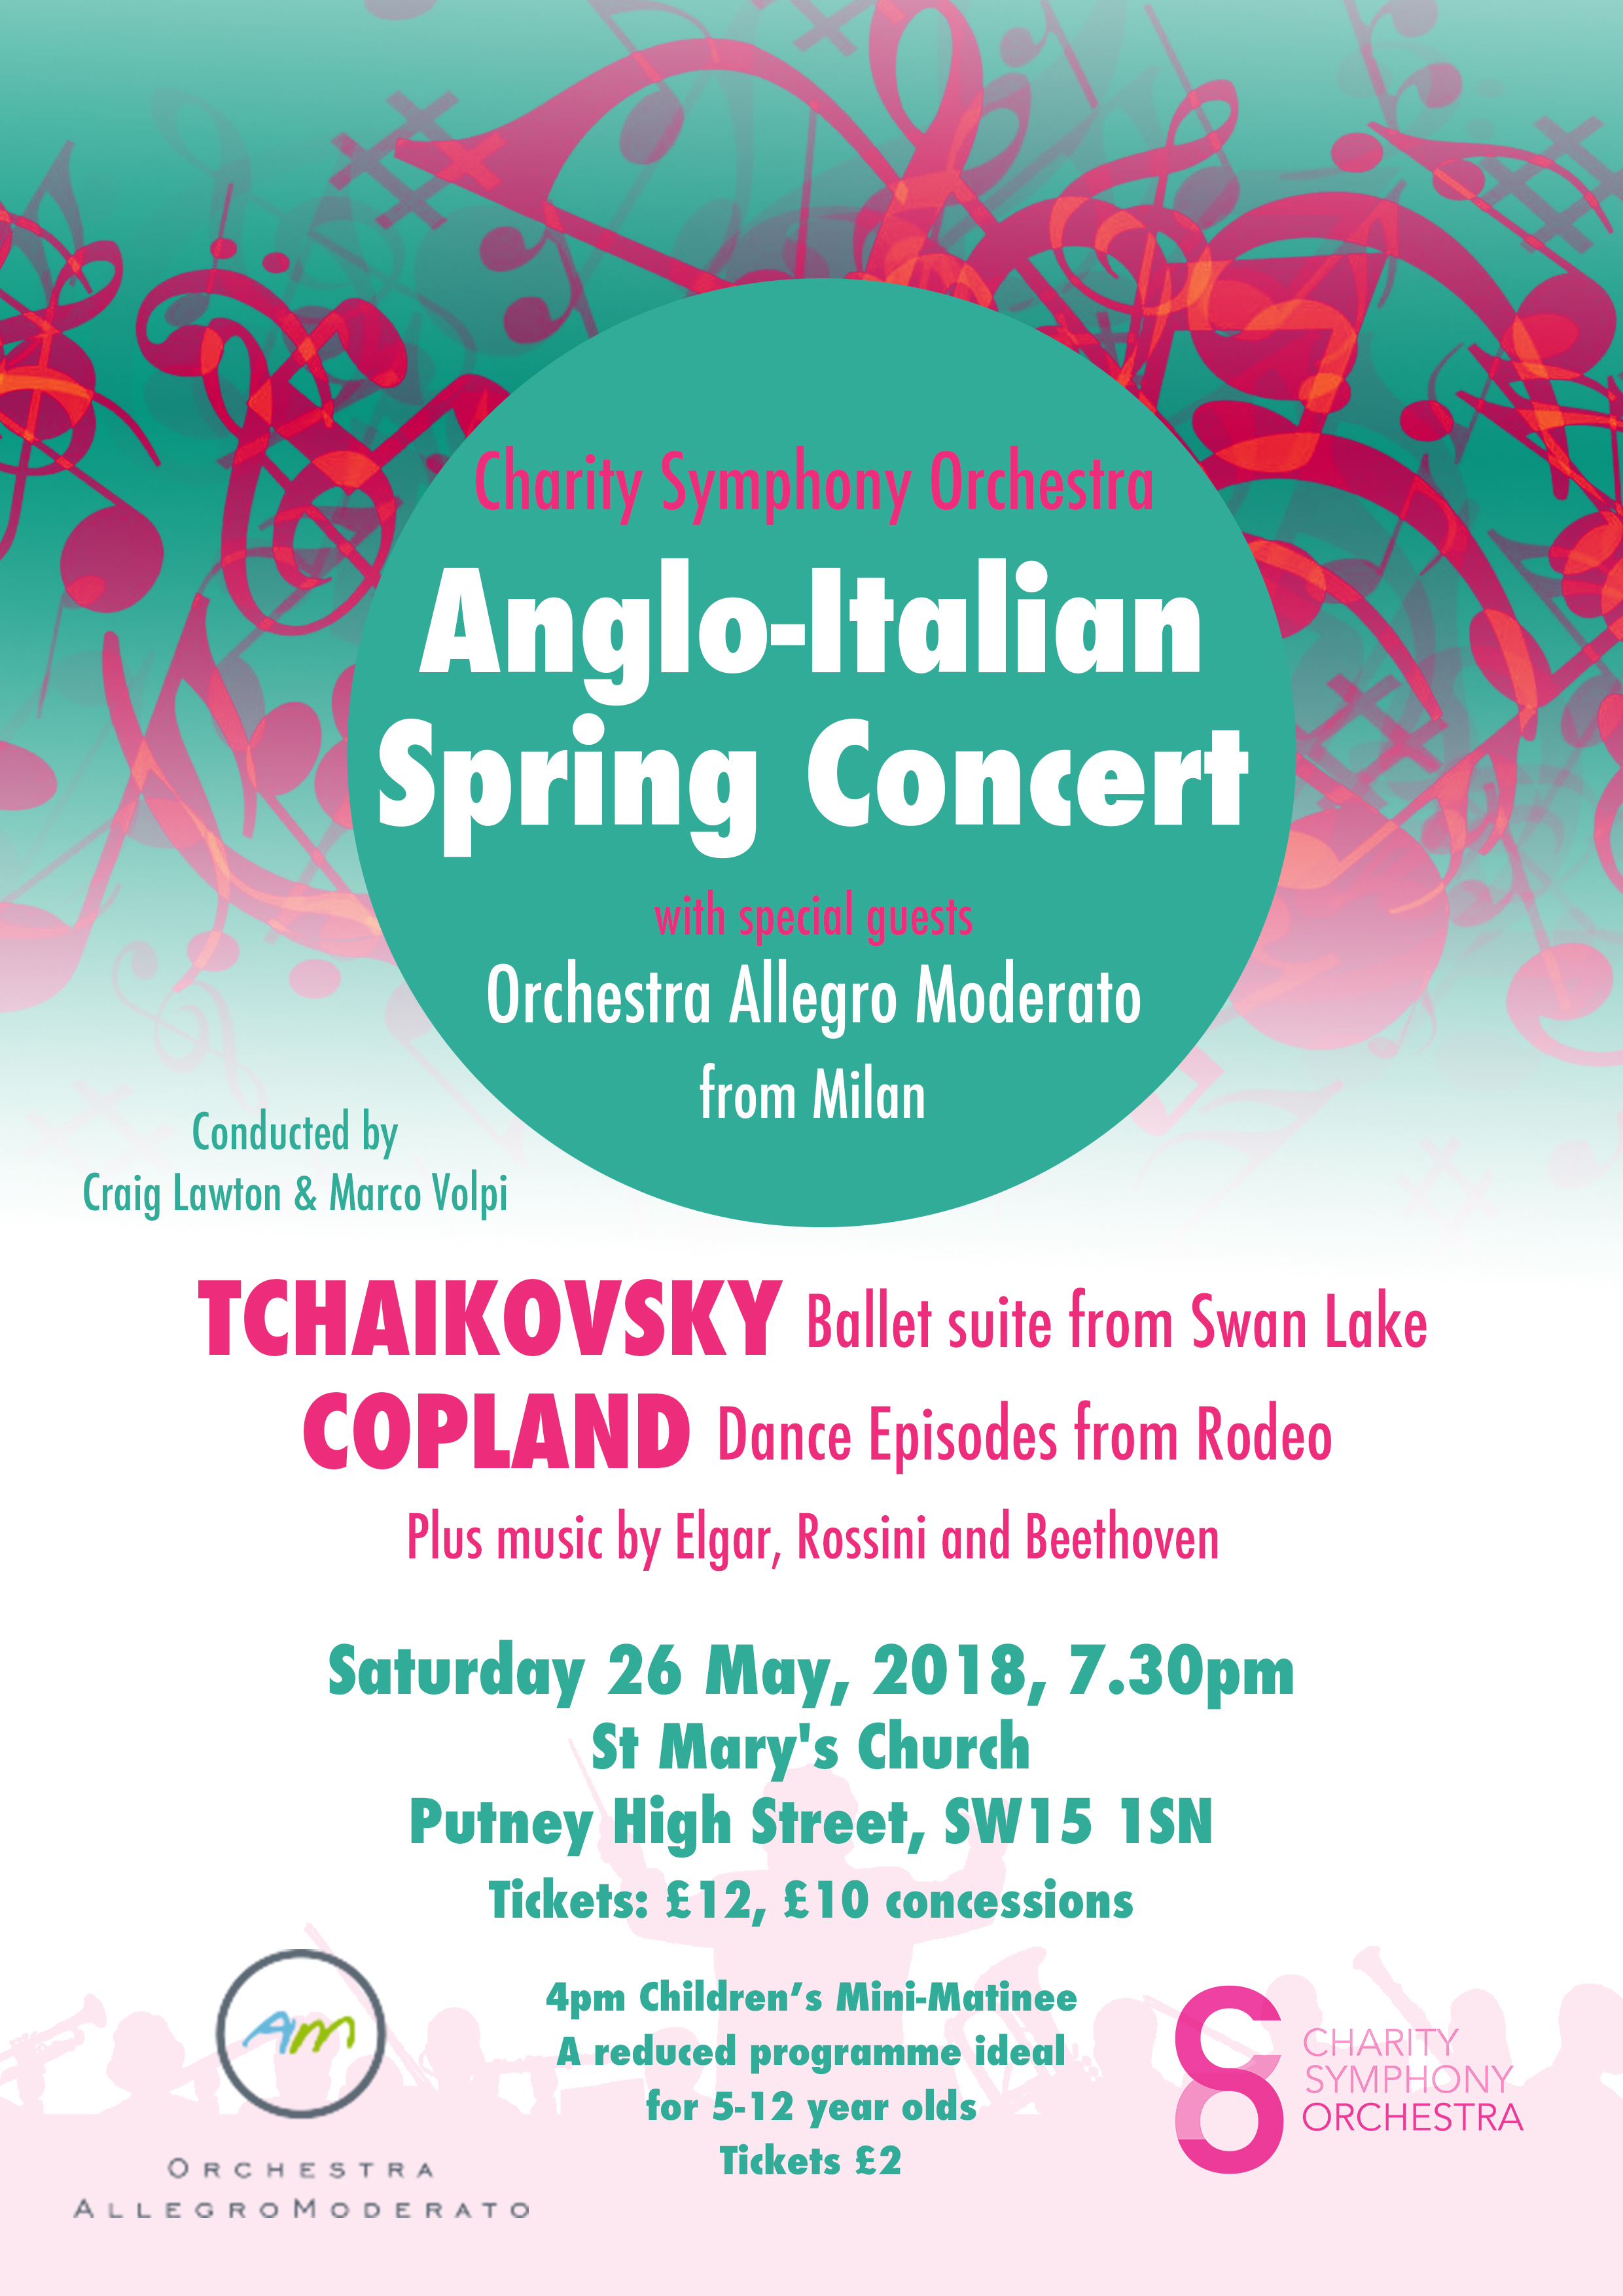 Anglo-Italian Spring Concert